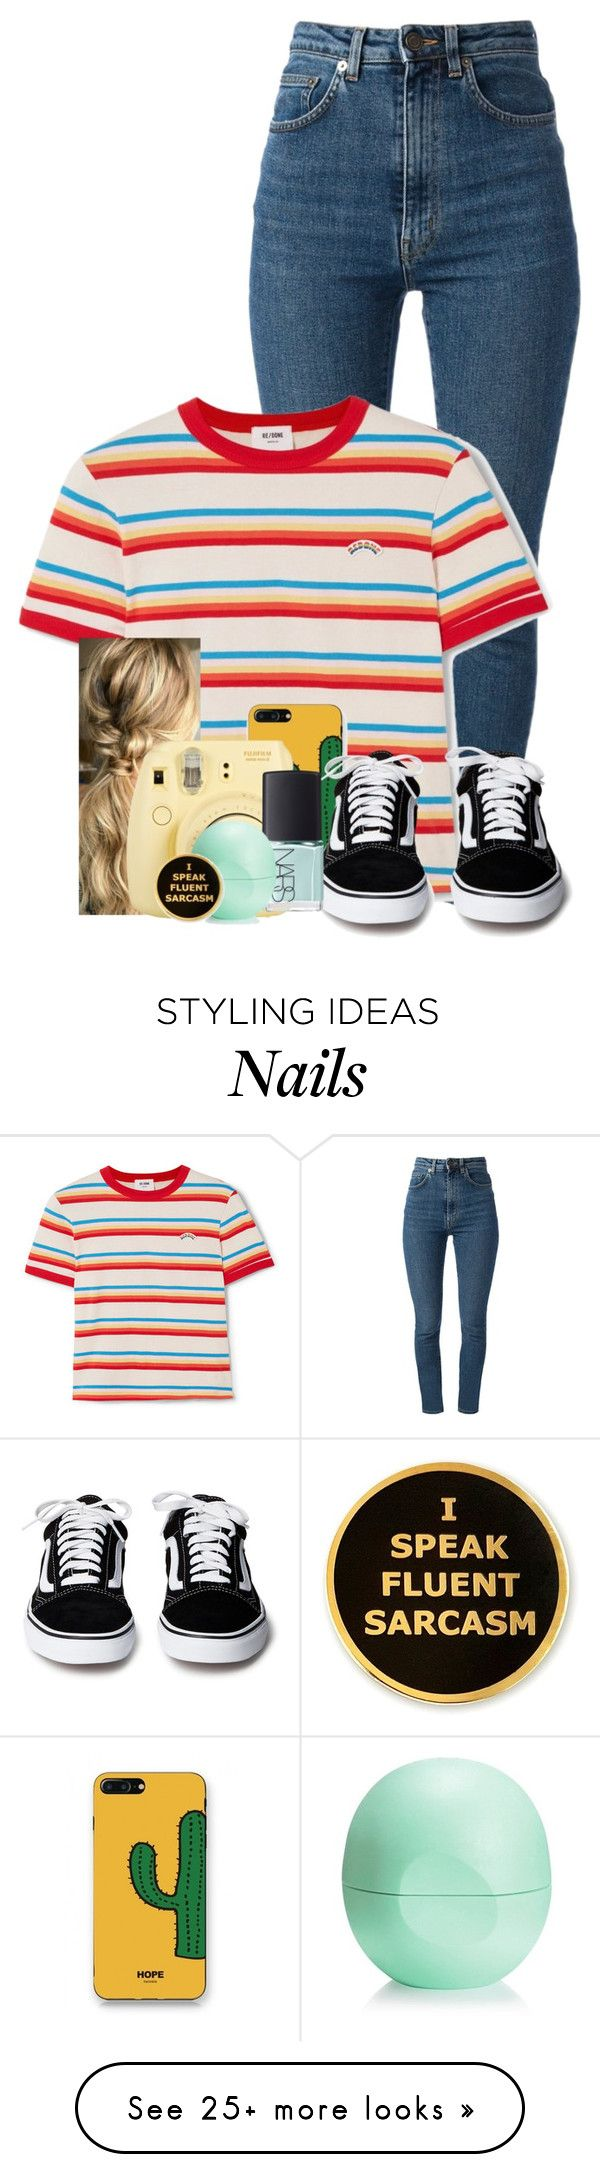 """Untitled #132"" by uunicornns on Polyvore featuring Yves Saint Laurent, RE/DONE, WithChic, Fuji, NARS Cosmetics and Eos"